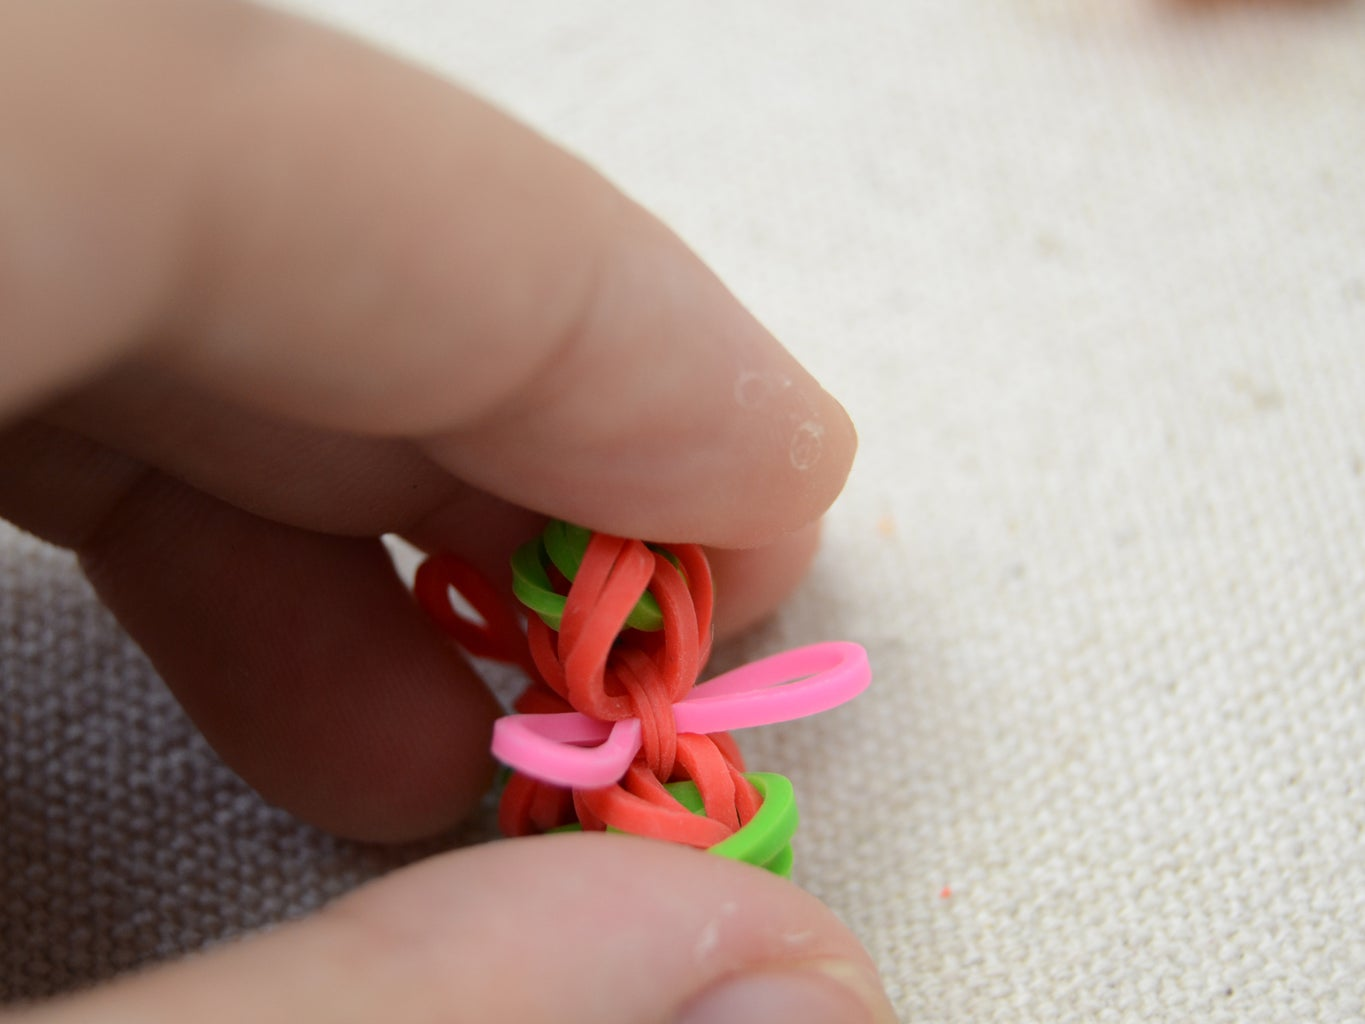 Thread a Rubber Band to  the Center Band of the Flower;